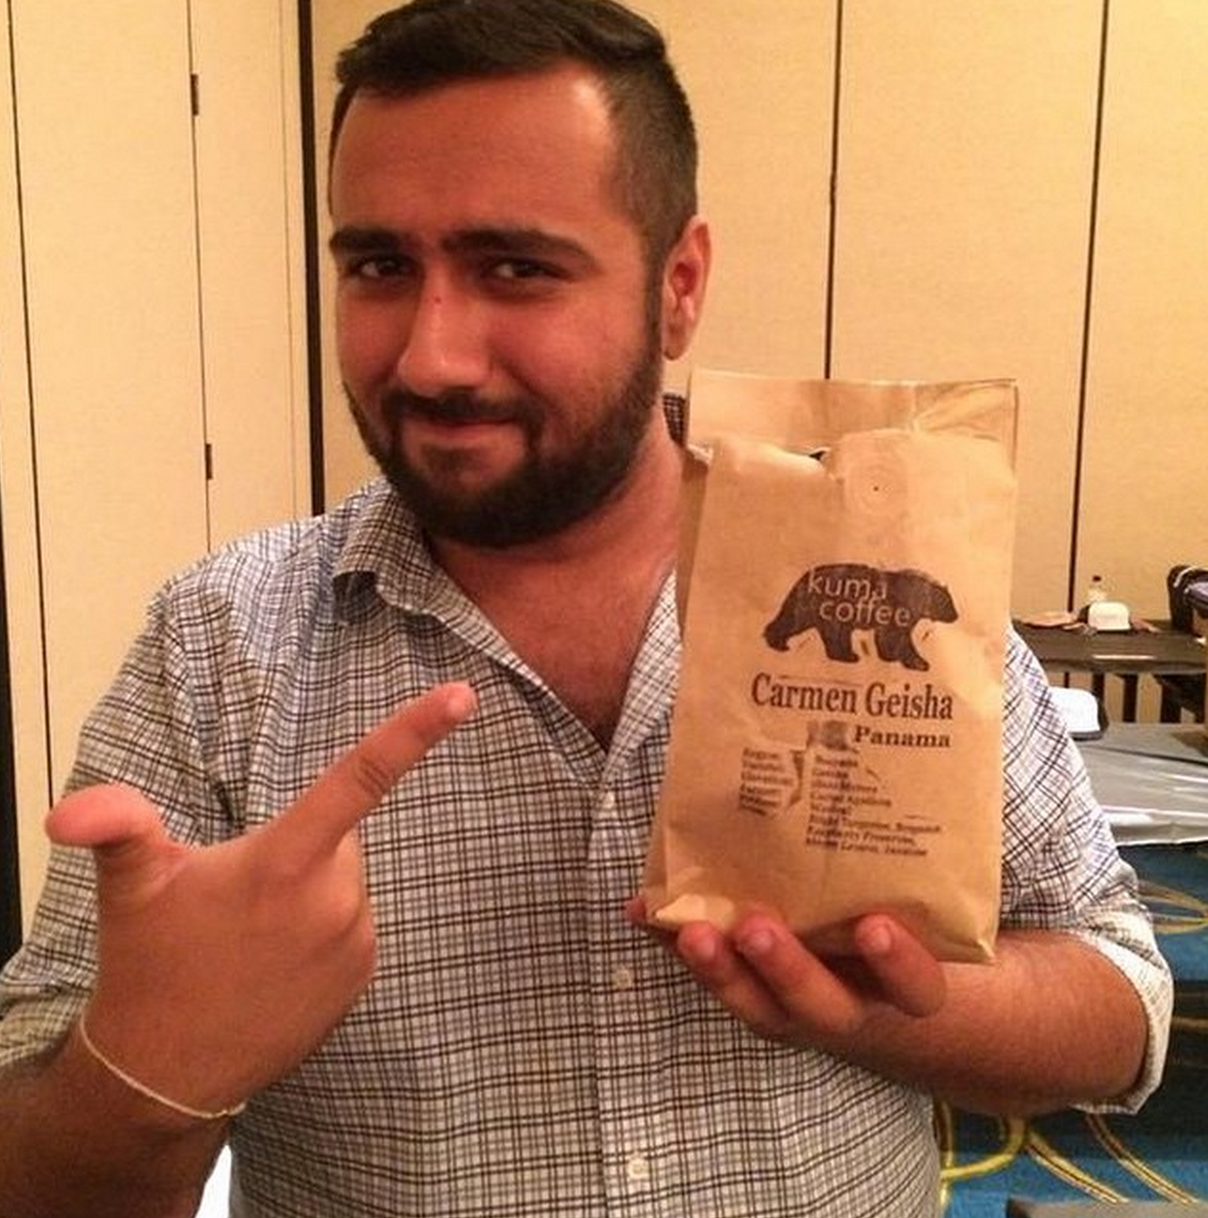 Saini used coffee from local roaster Kuma in the NW Brewers Cup competition.